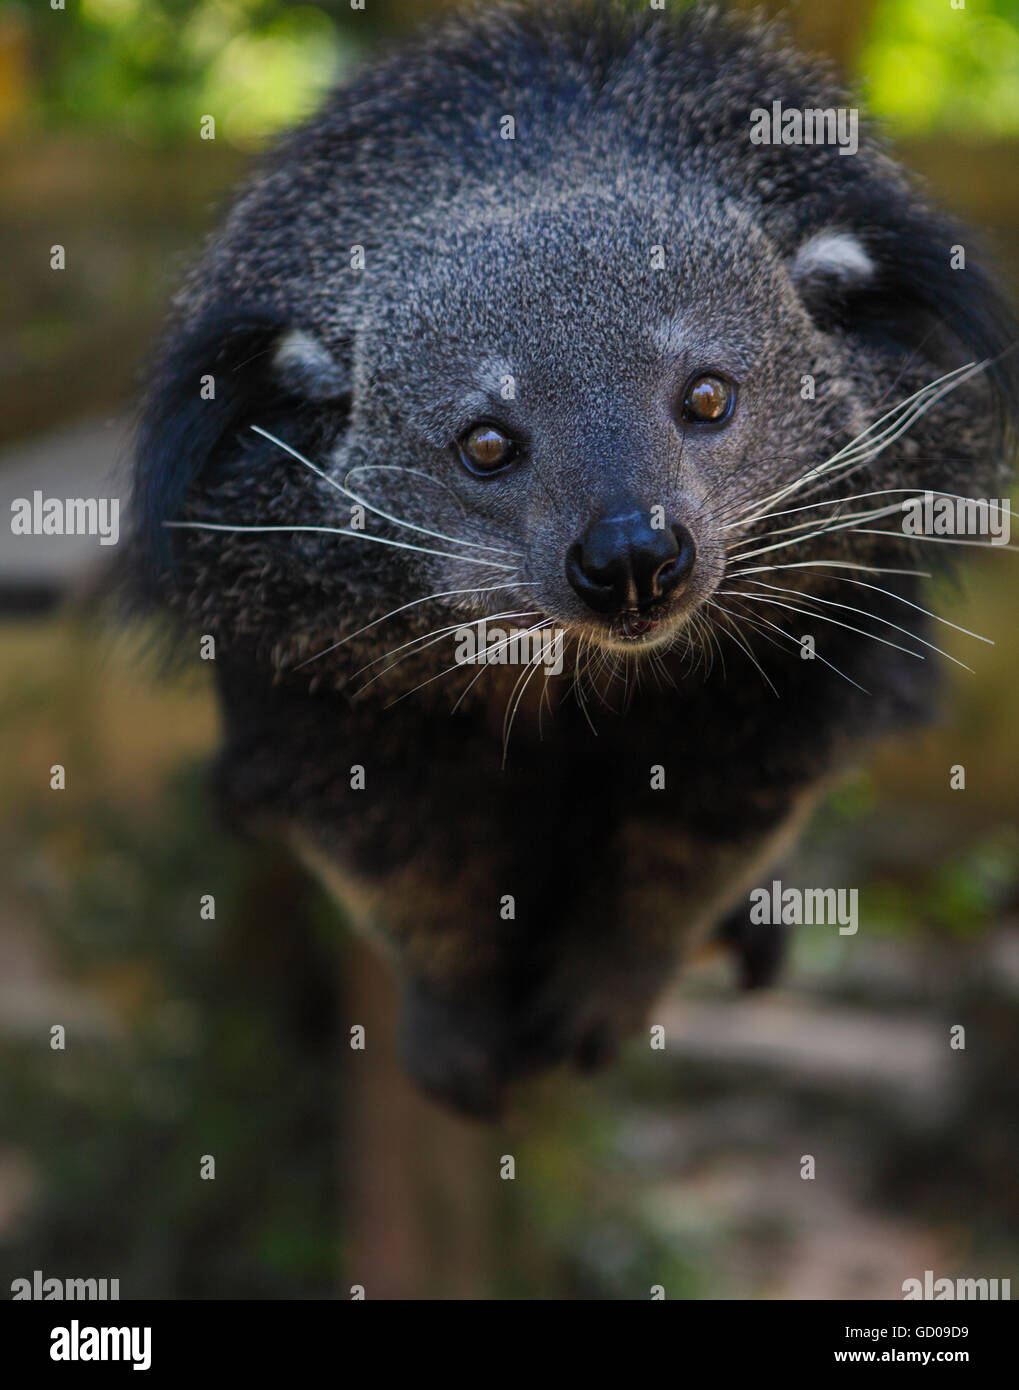 Binturong Bear Cat Stock Photos Binturong Bear Cat Stock Images